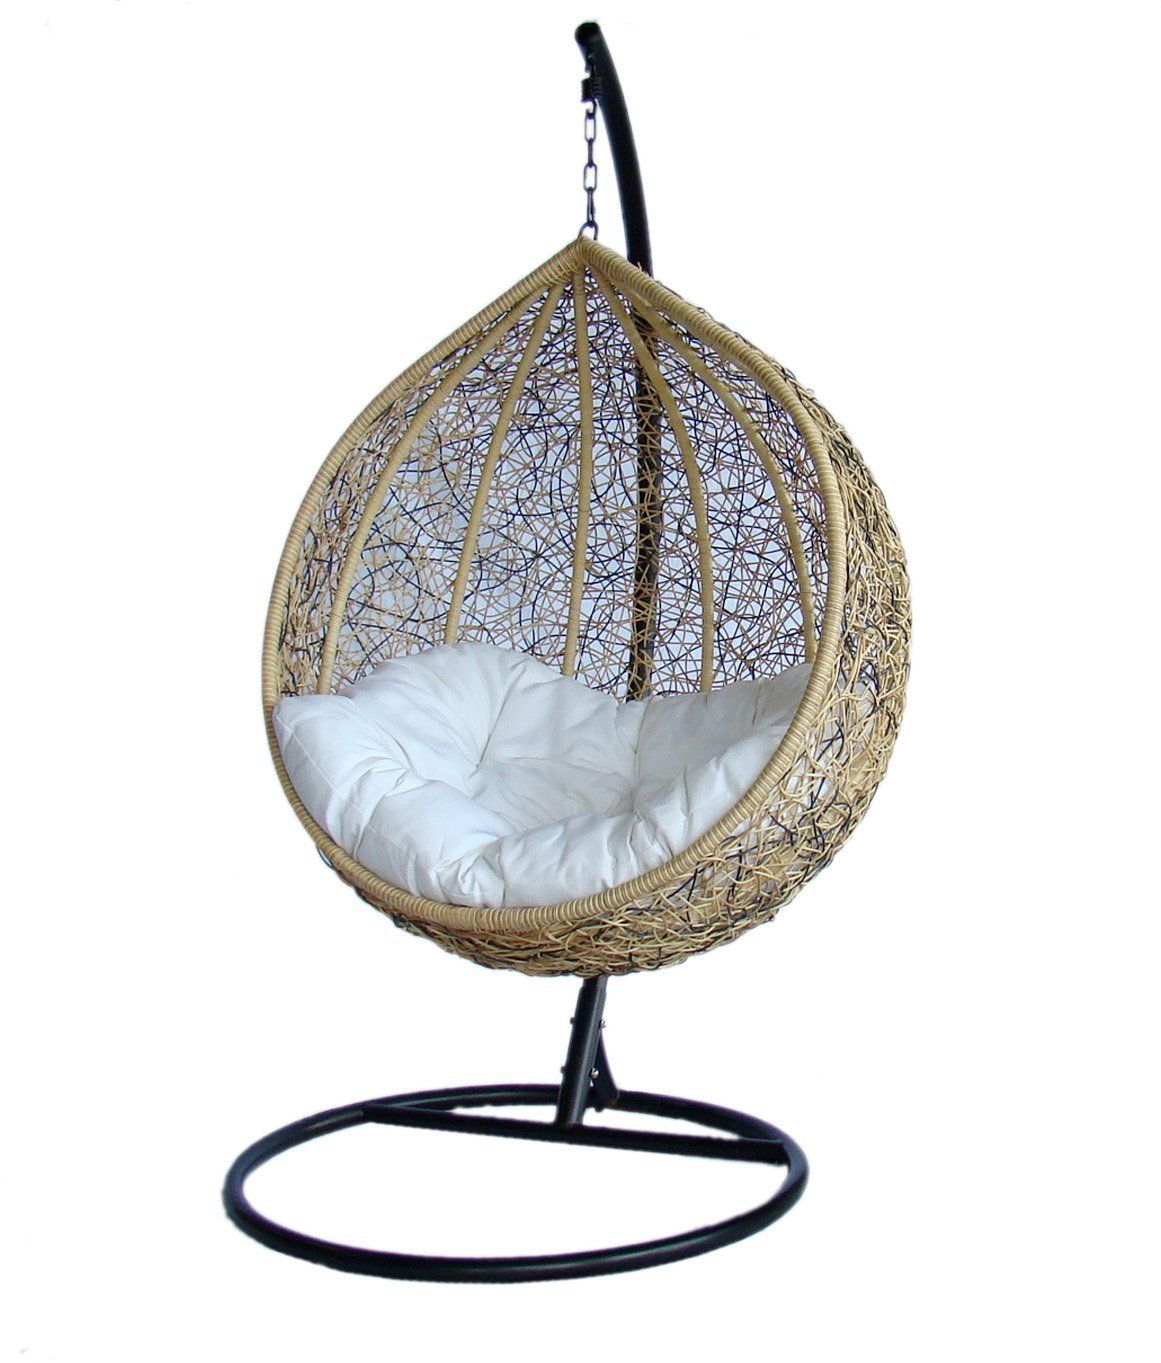 17 Types Of Swing Chairs As Gifts For Family You Should Check Swinging Chair Basket Chair Wicker Swing